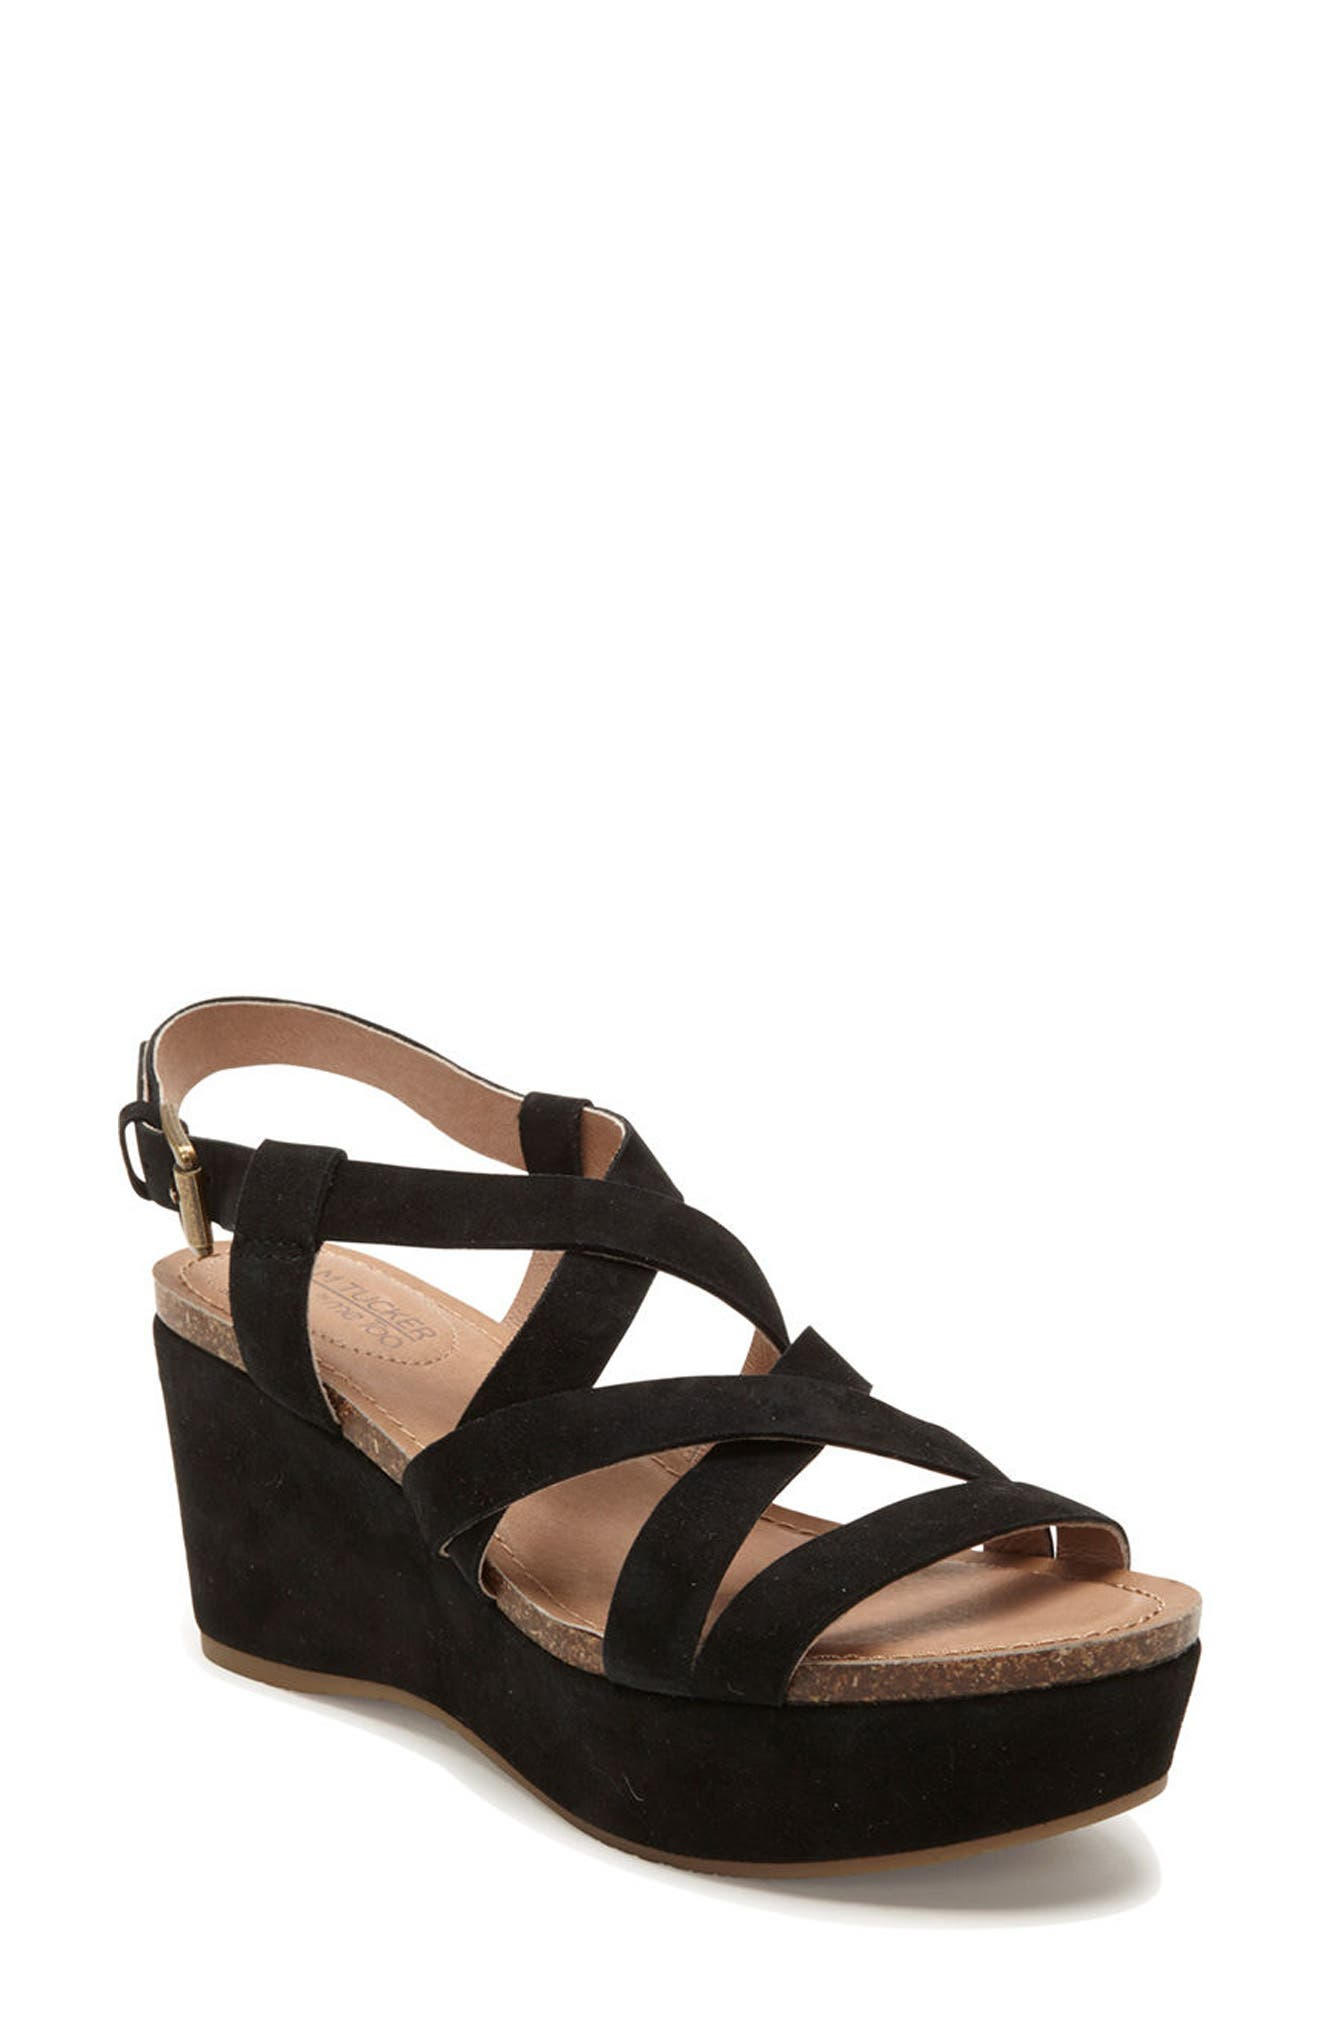 Adam Tucker Bria Strappy Sandal,                             Main thumbnail 1, color,                             Black Suede